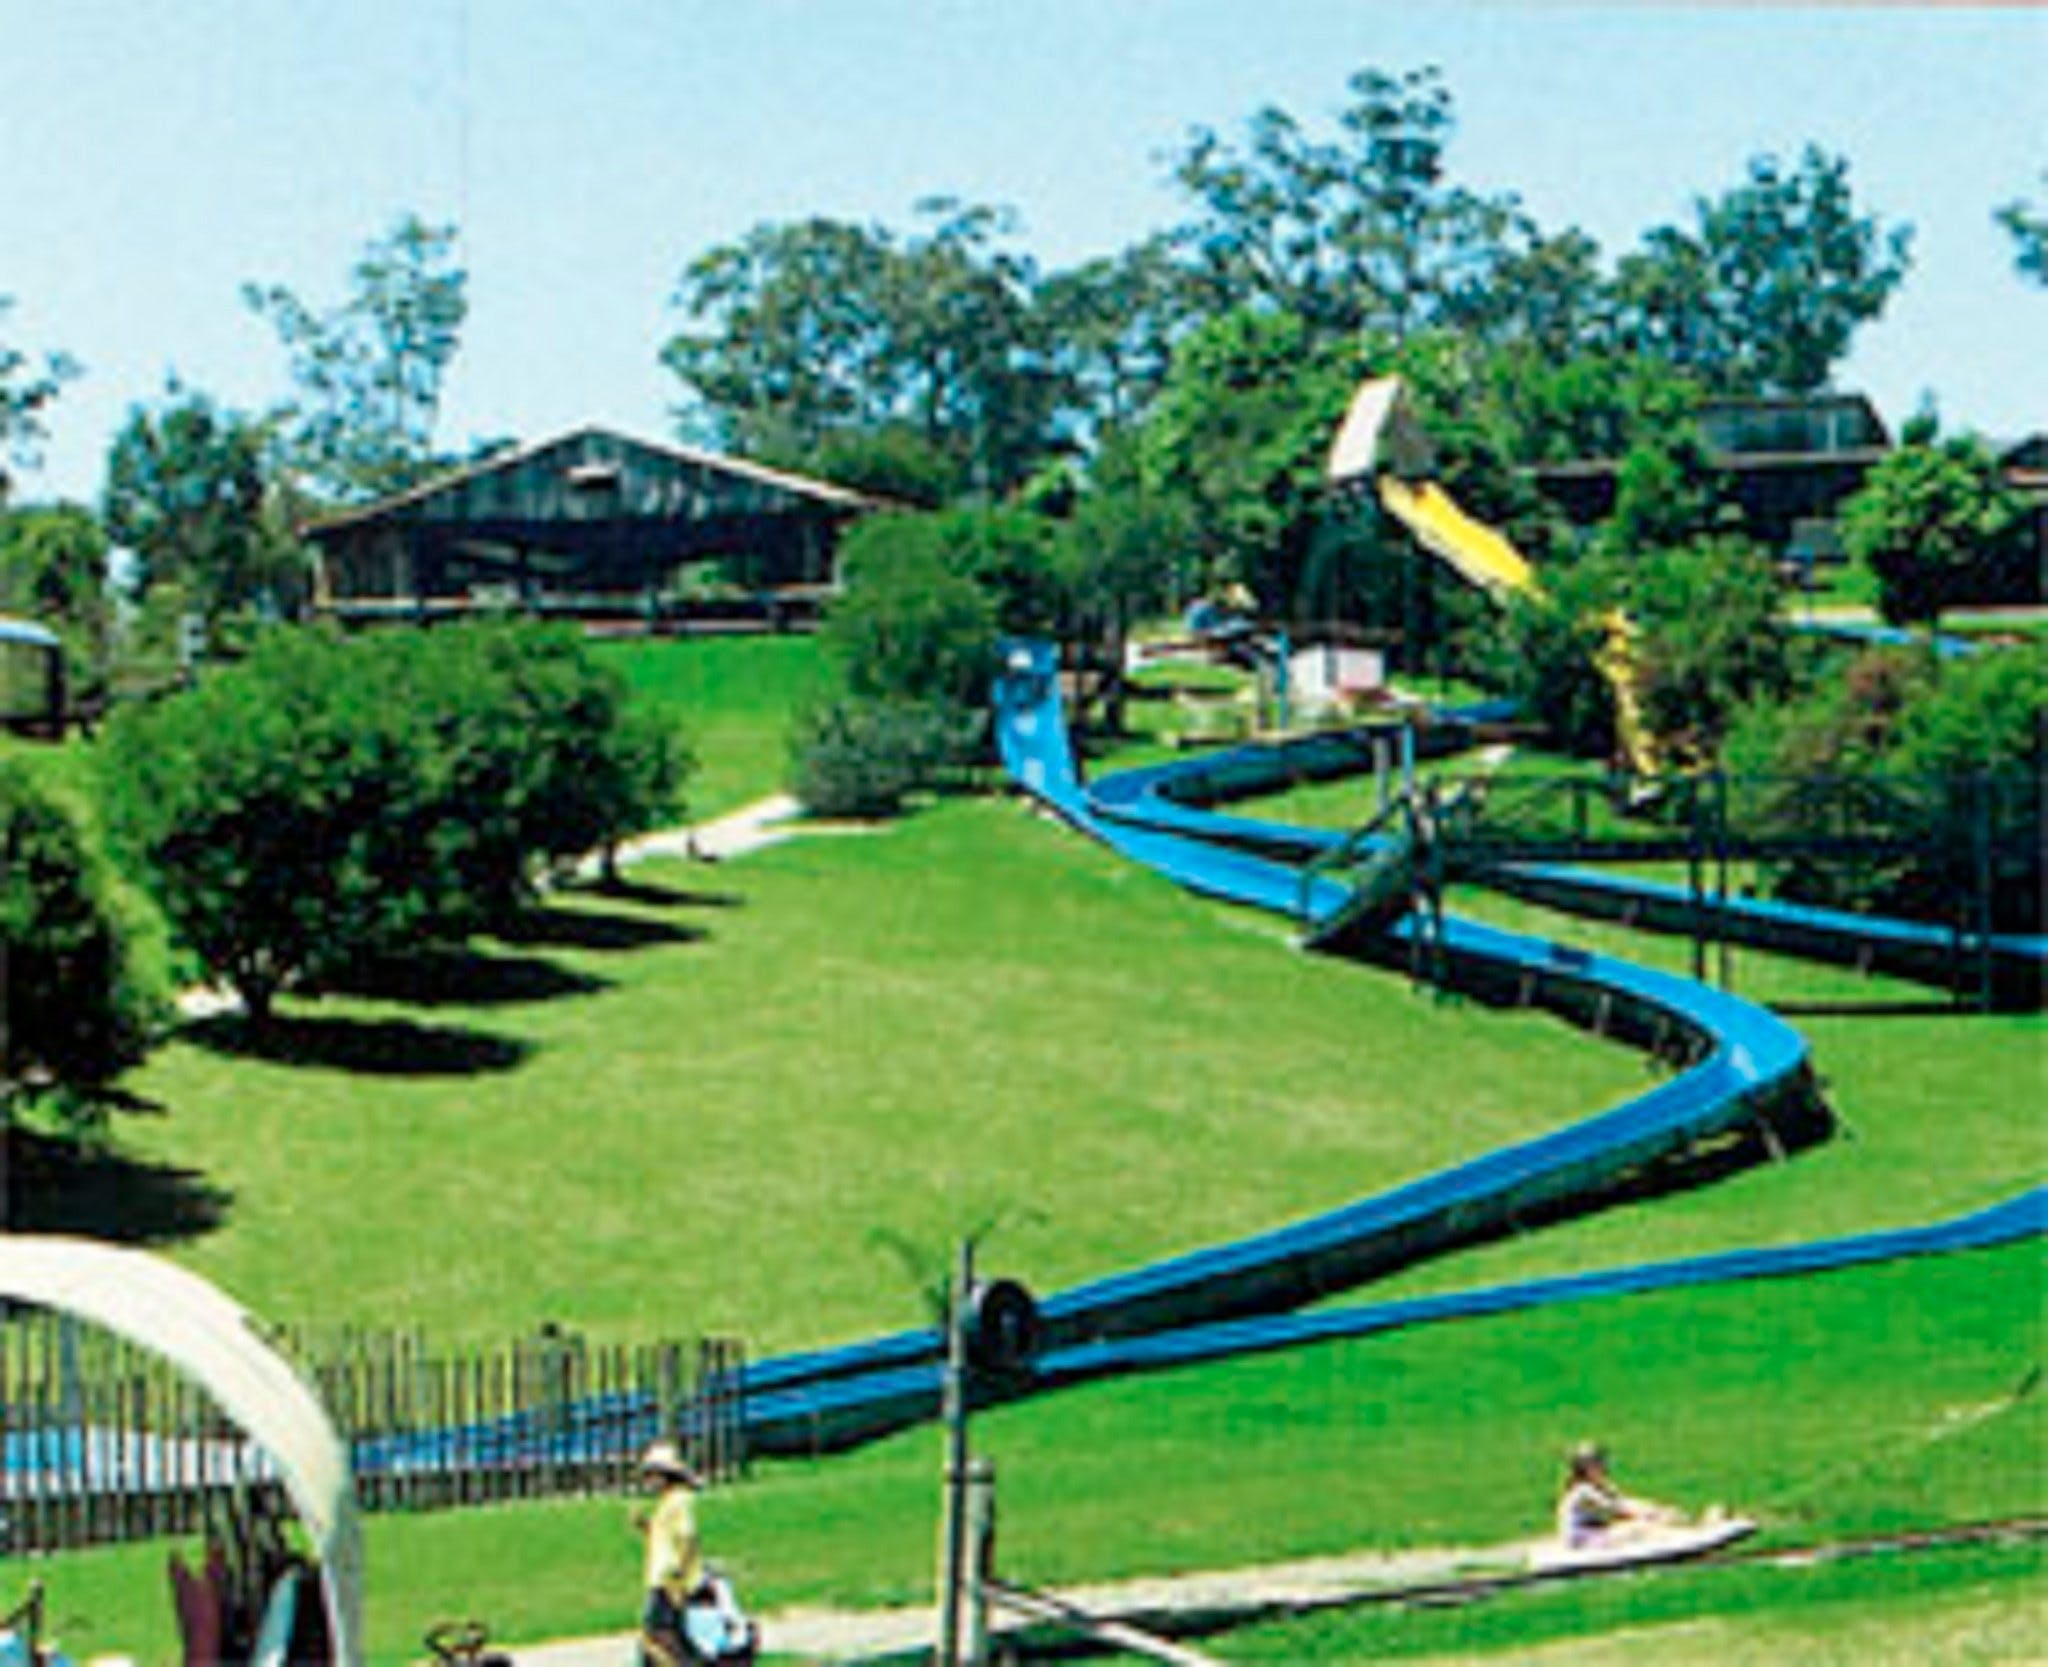 Big Buzz Fun Park - Accommodation in Bendigo